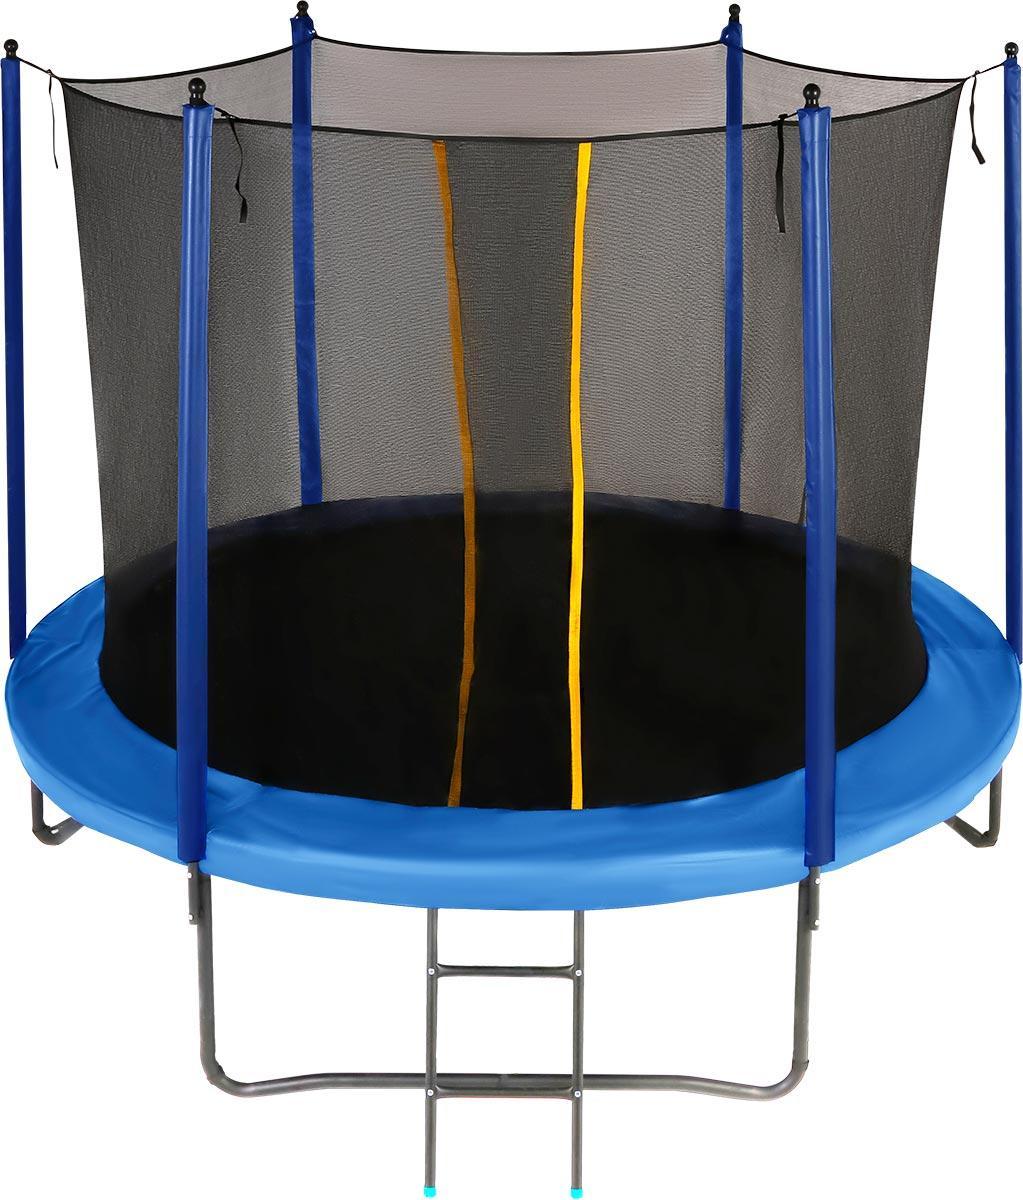 Батут JUMPY Comfort 10 FT (Blue), фото №1